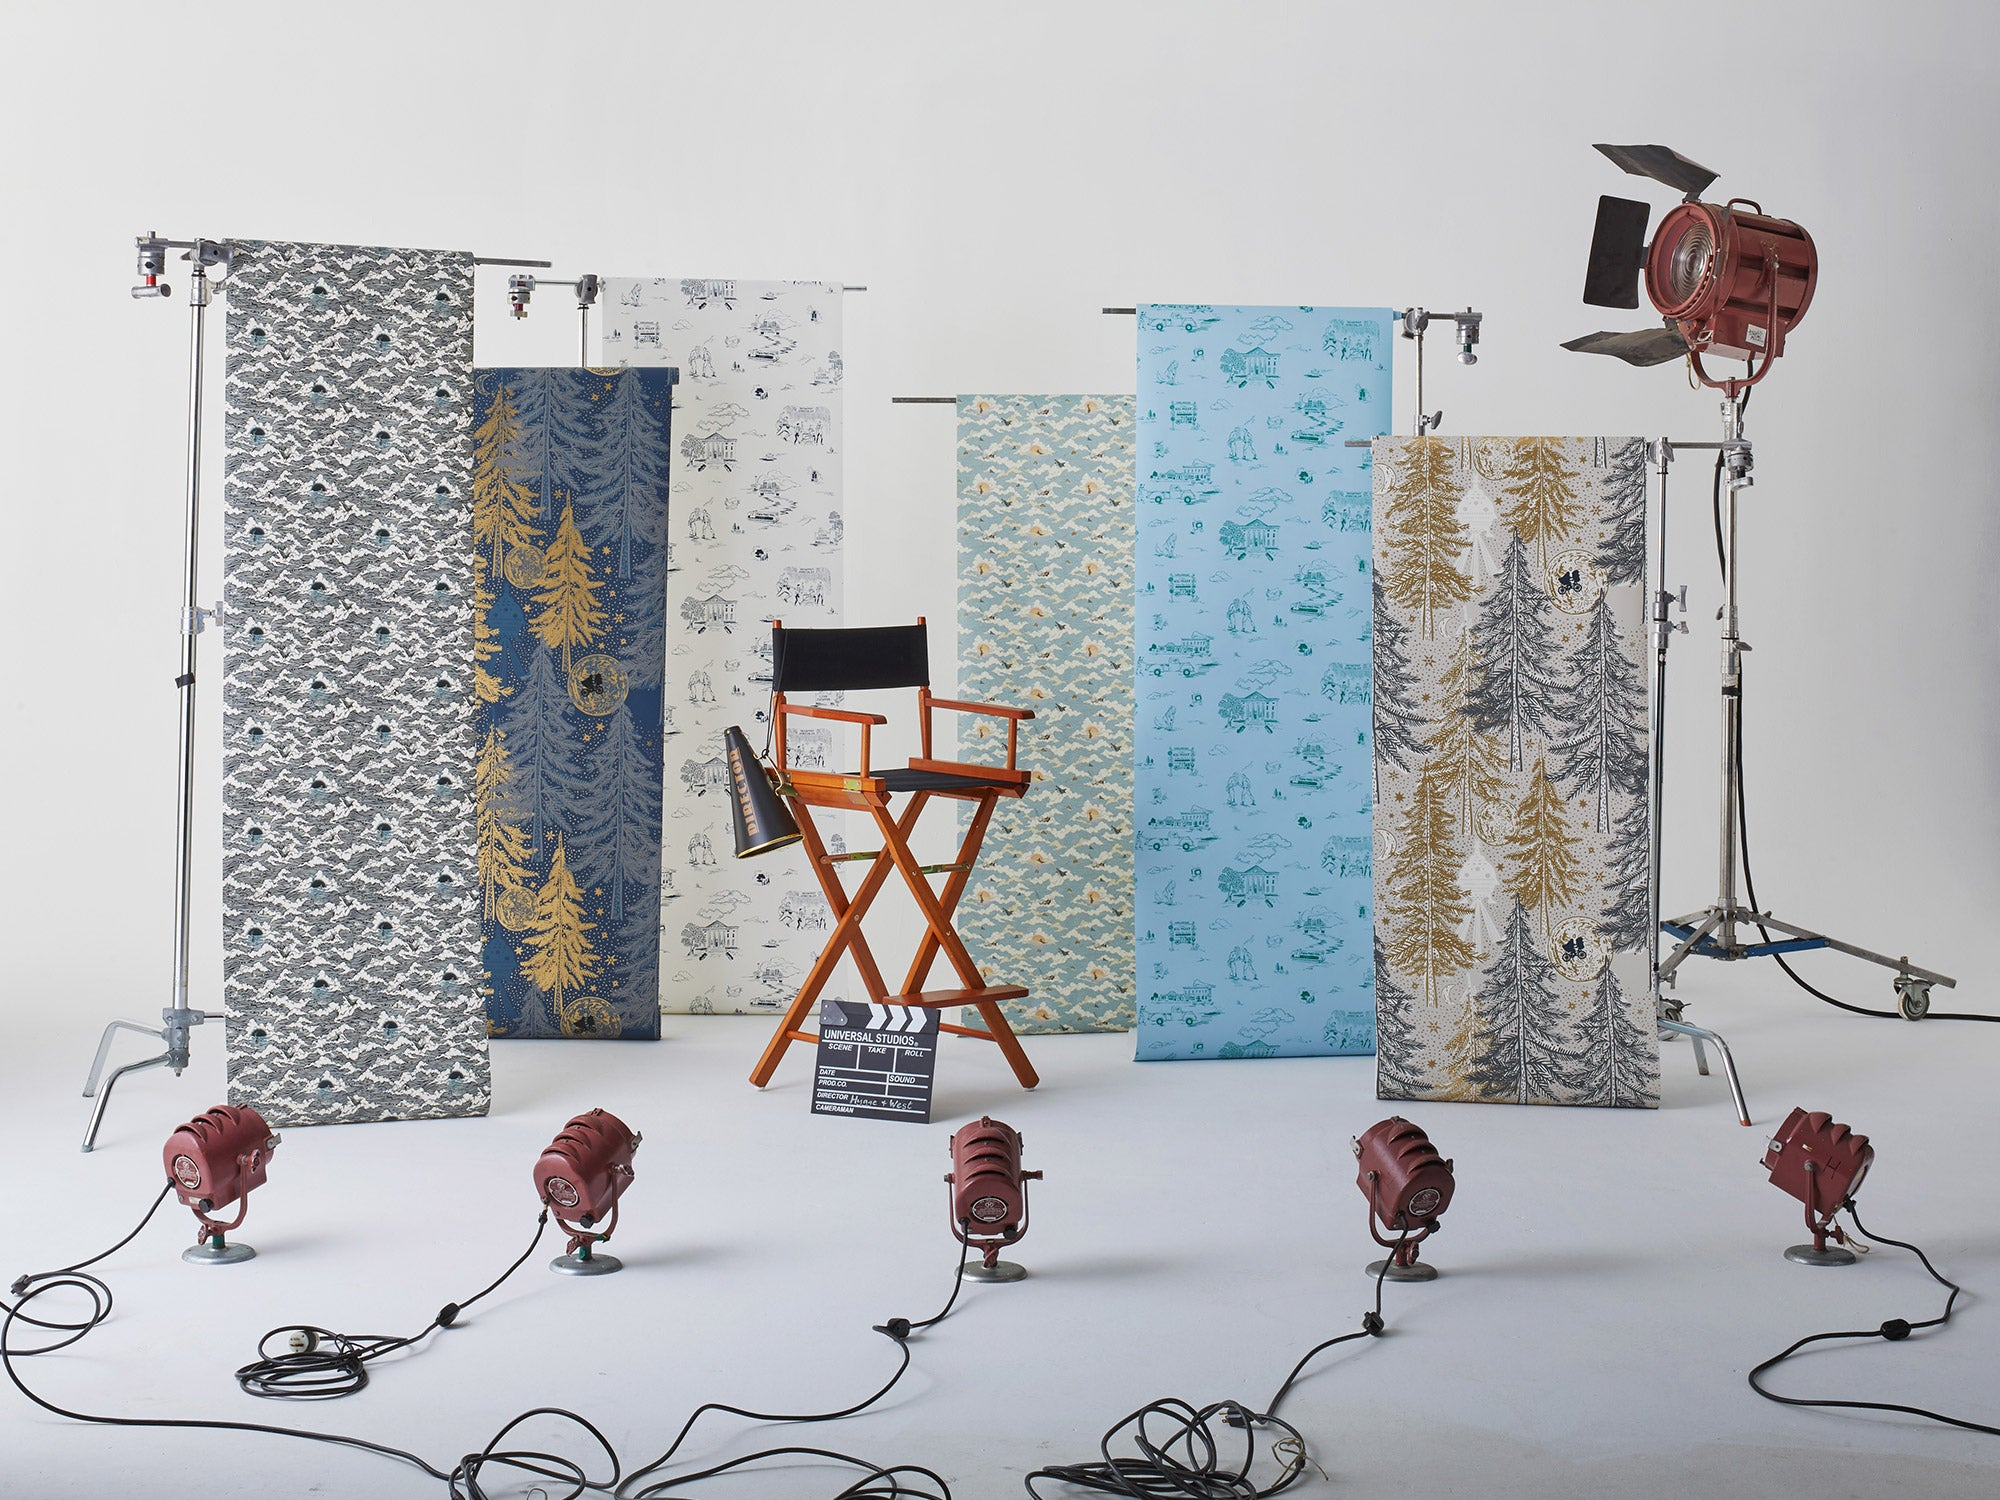 Universal + Hygge & West wallpaper and shower curtain collection